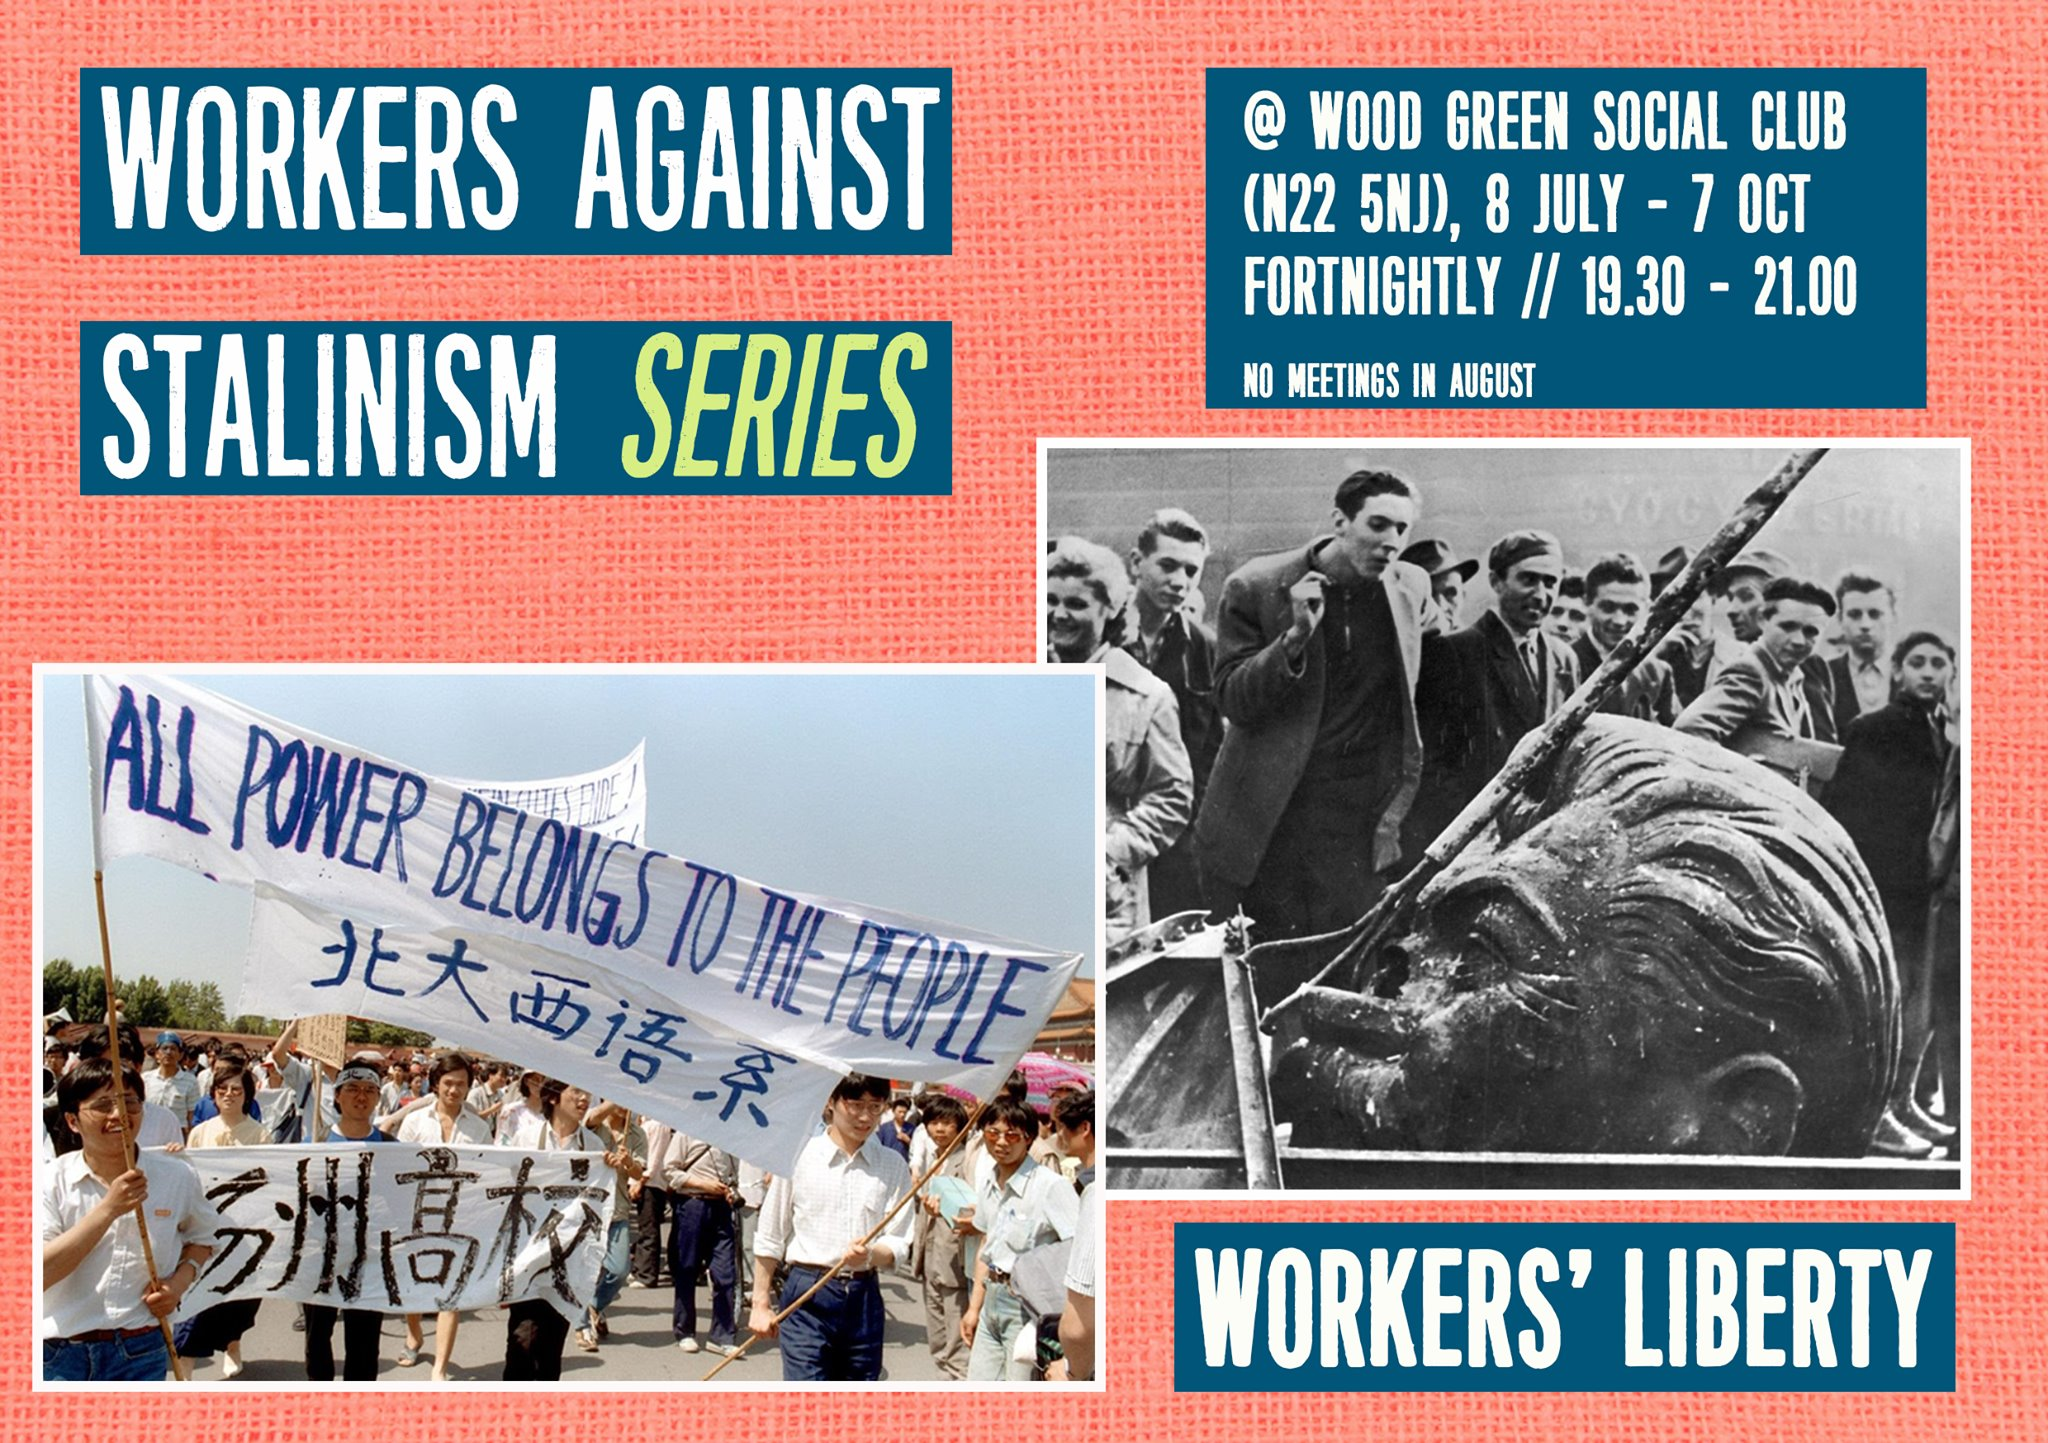 Workers against Stalinism series